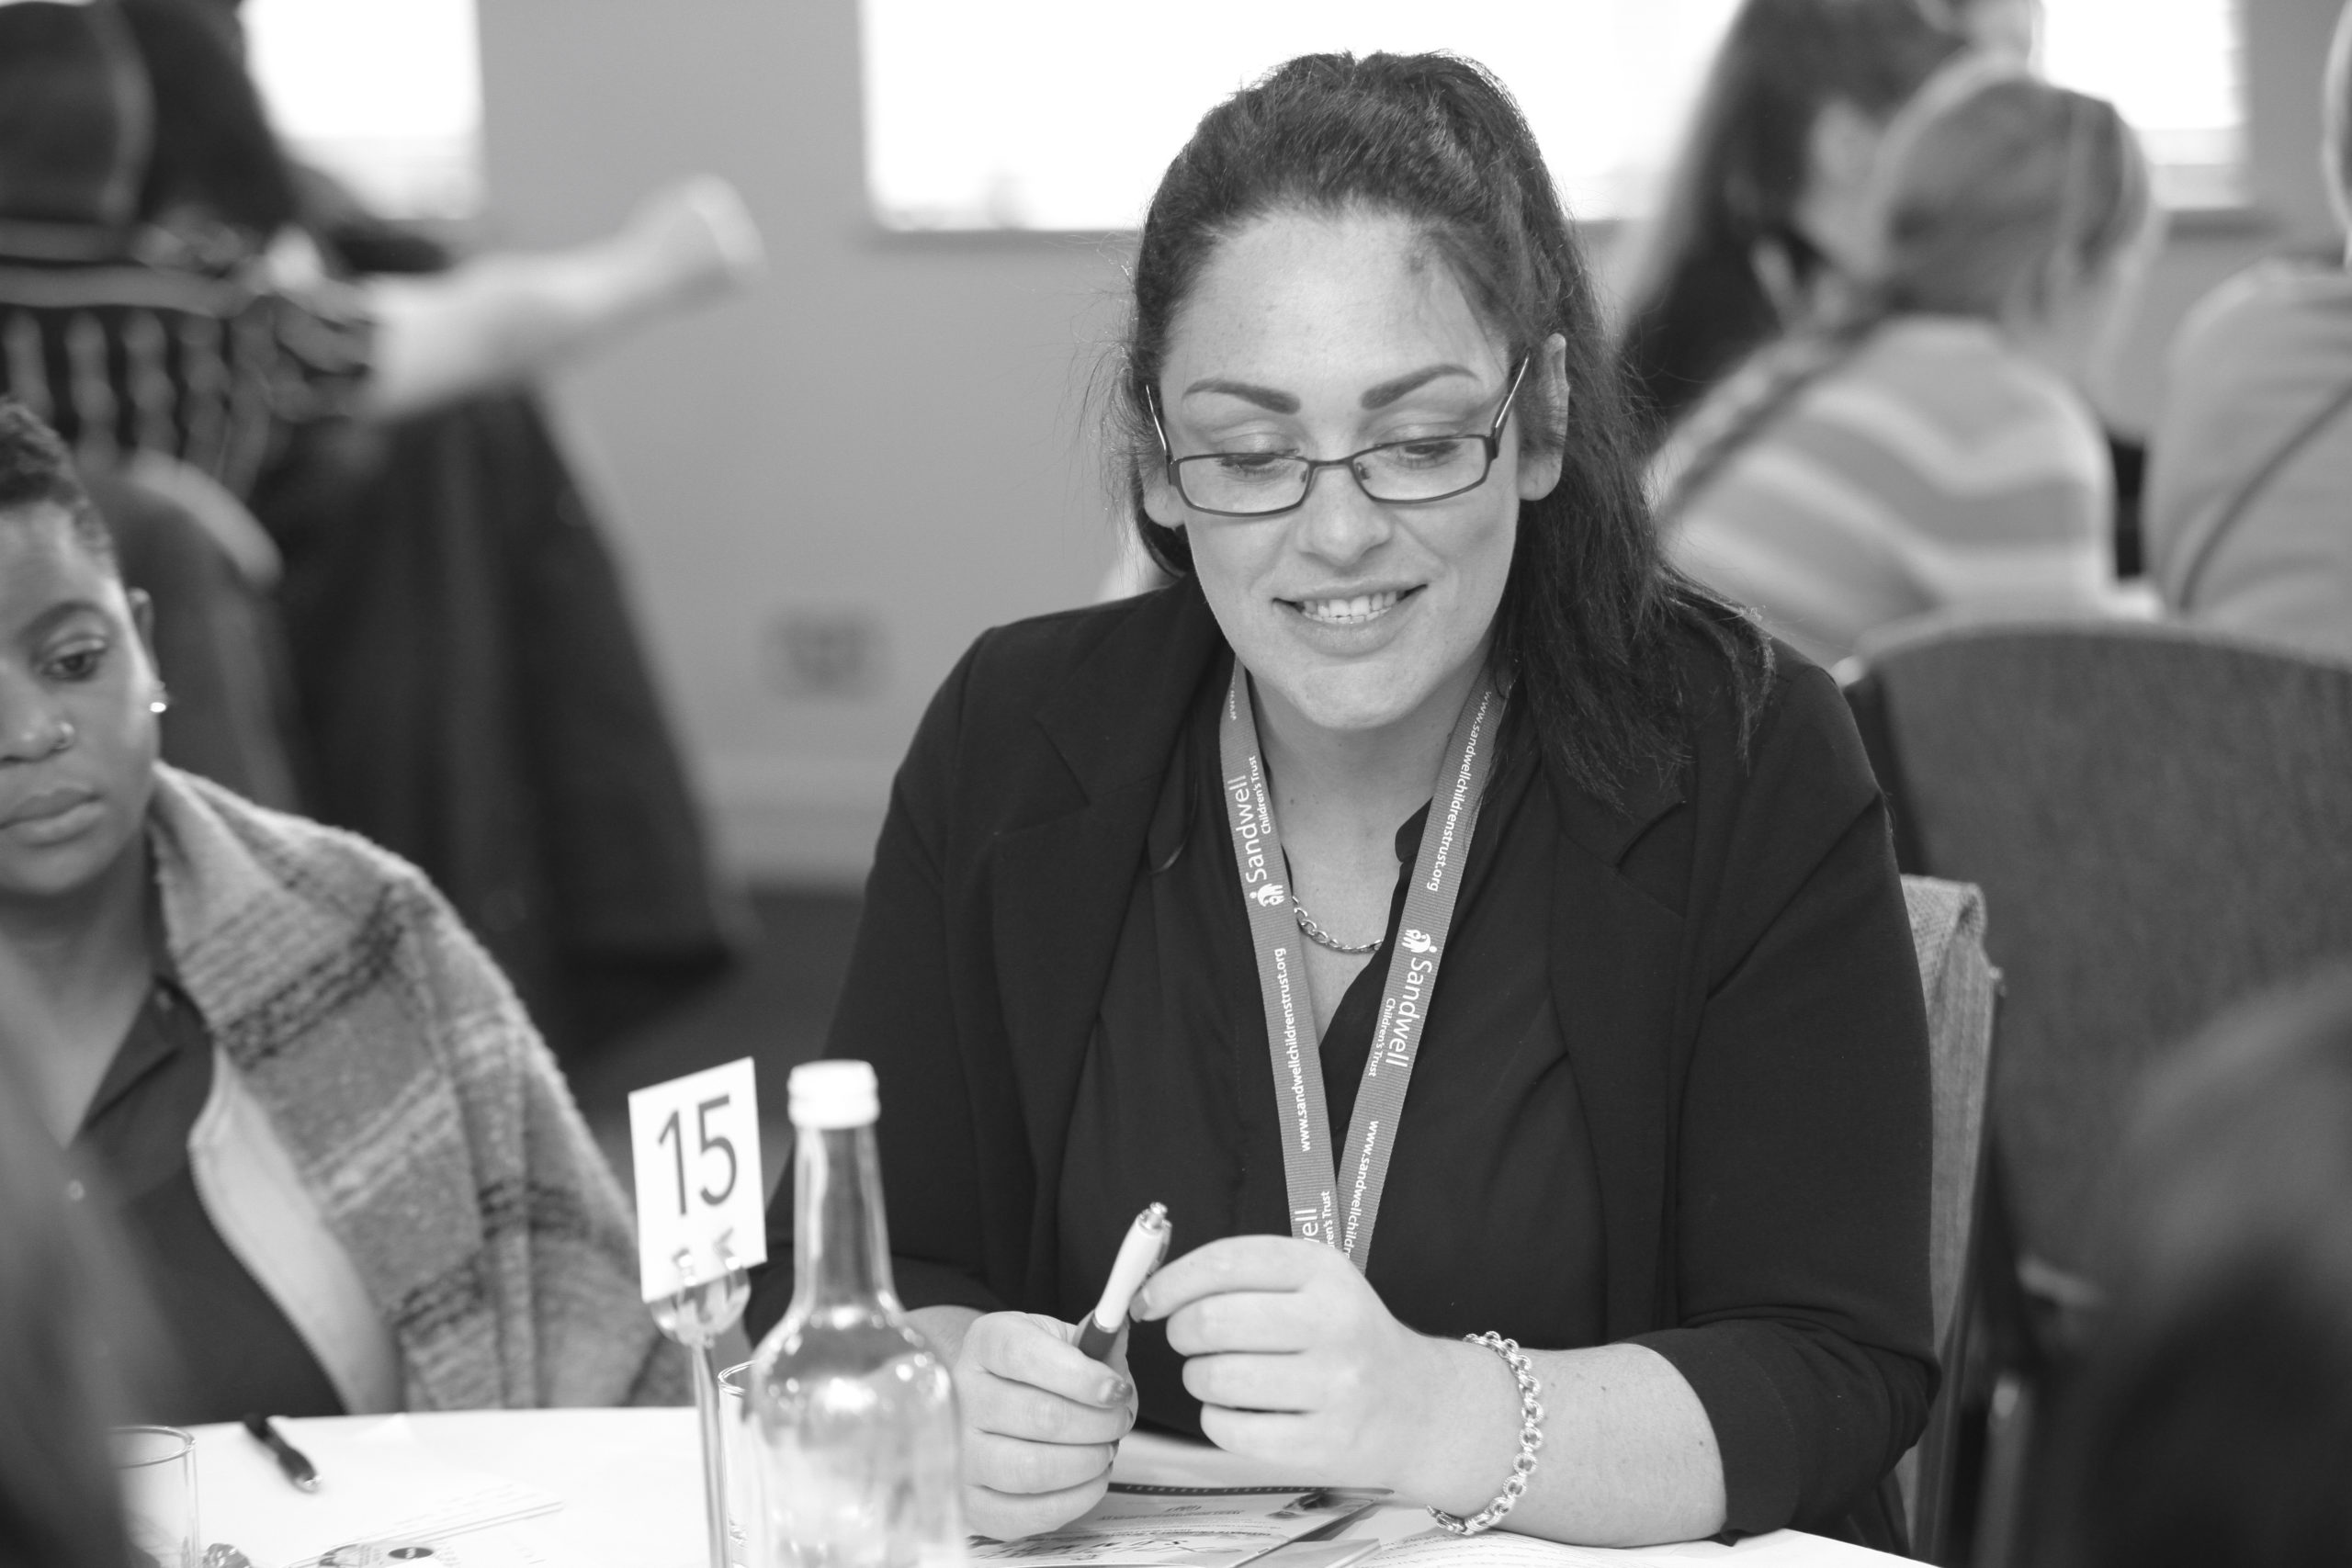 A woman smiling at a staff training event